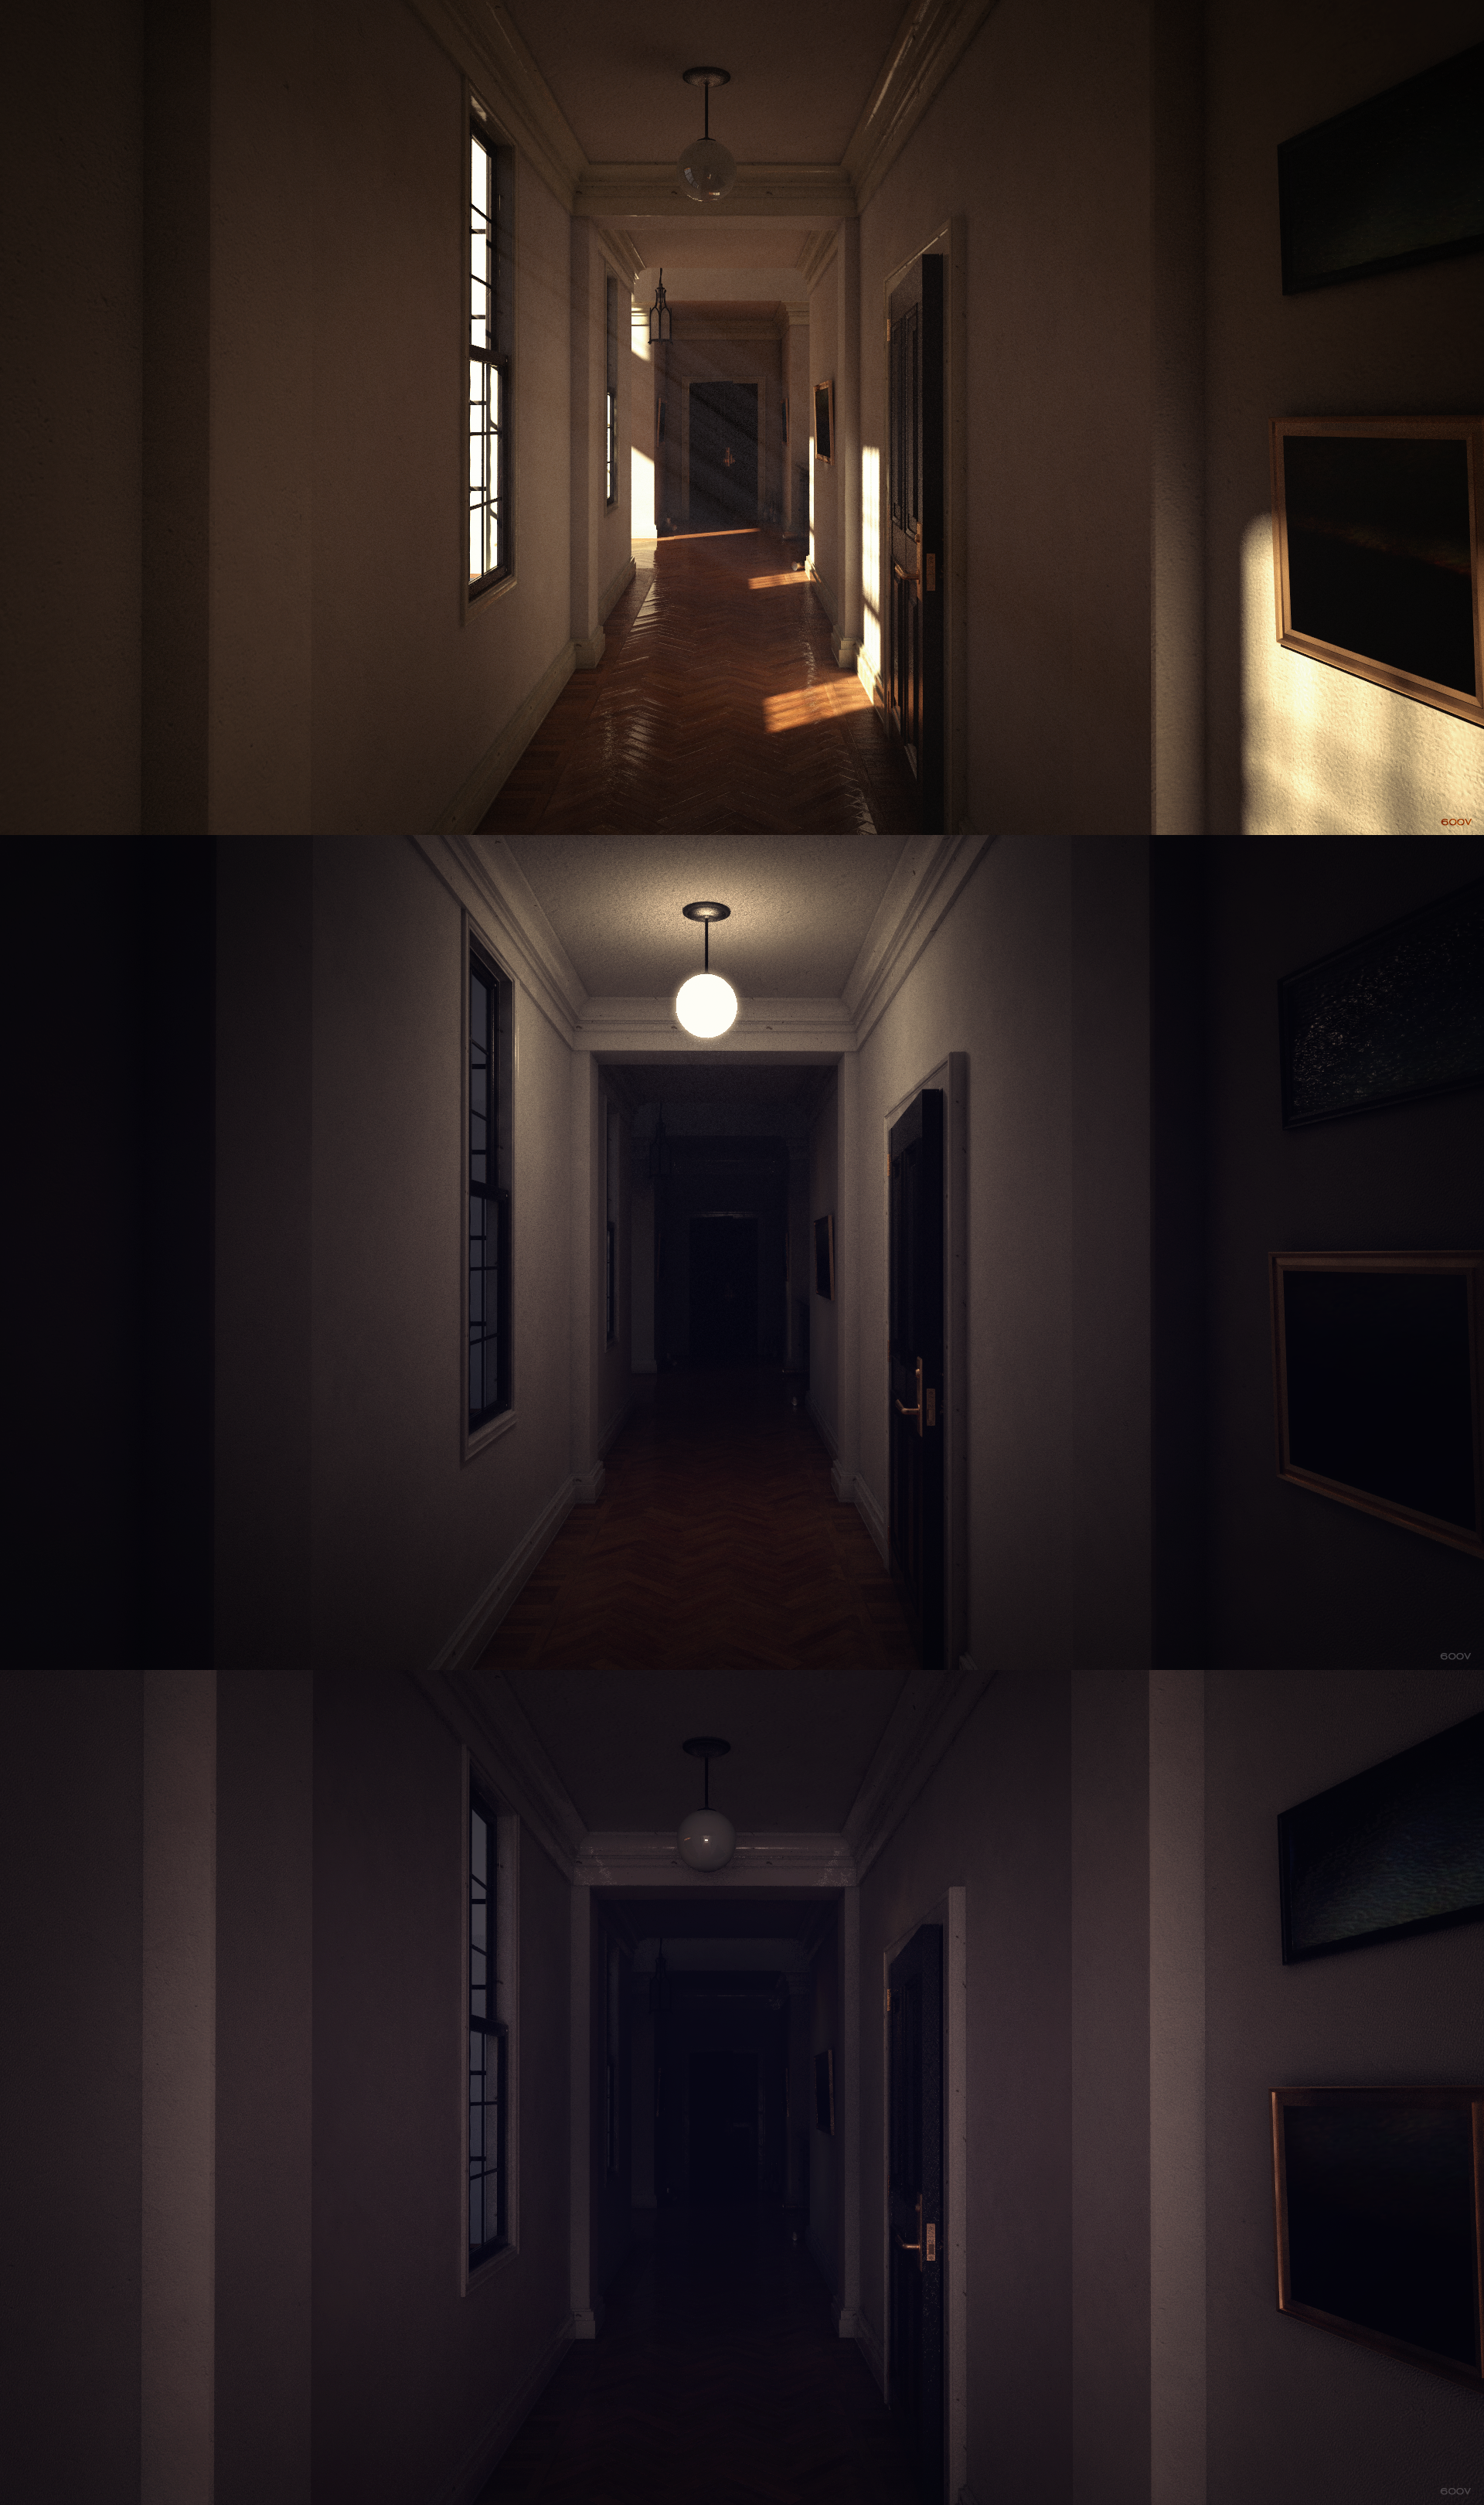 P.T. by 600v